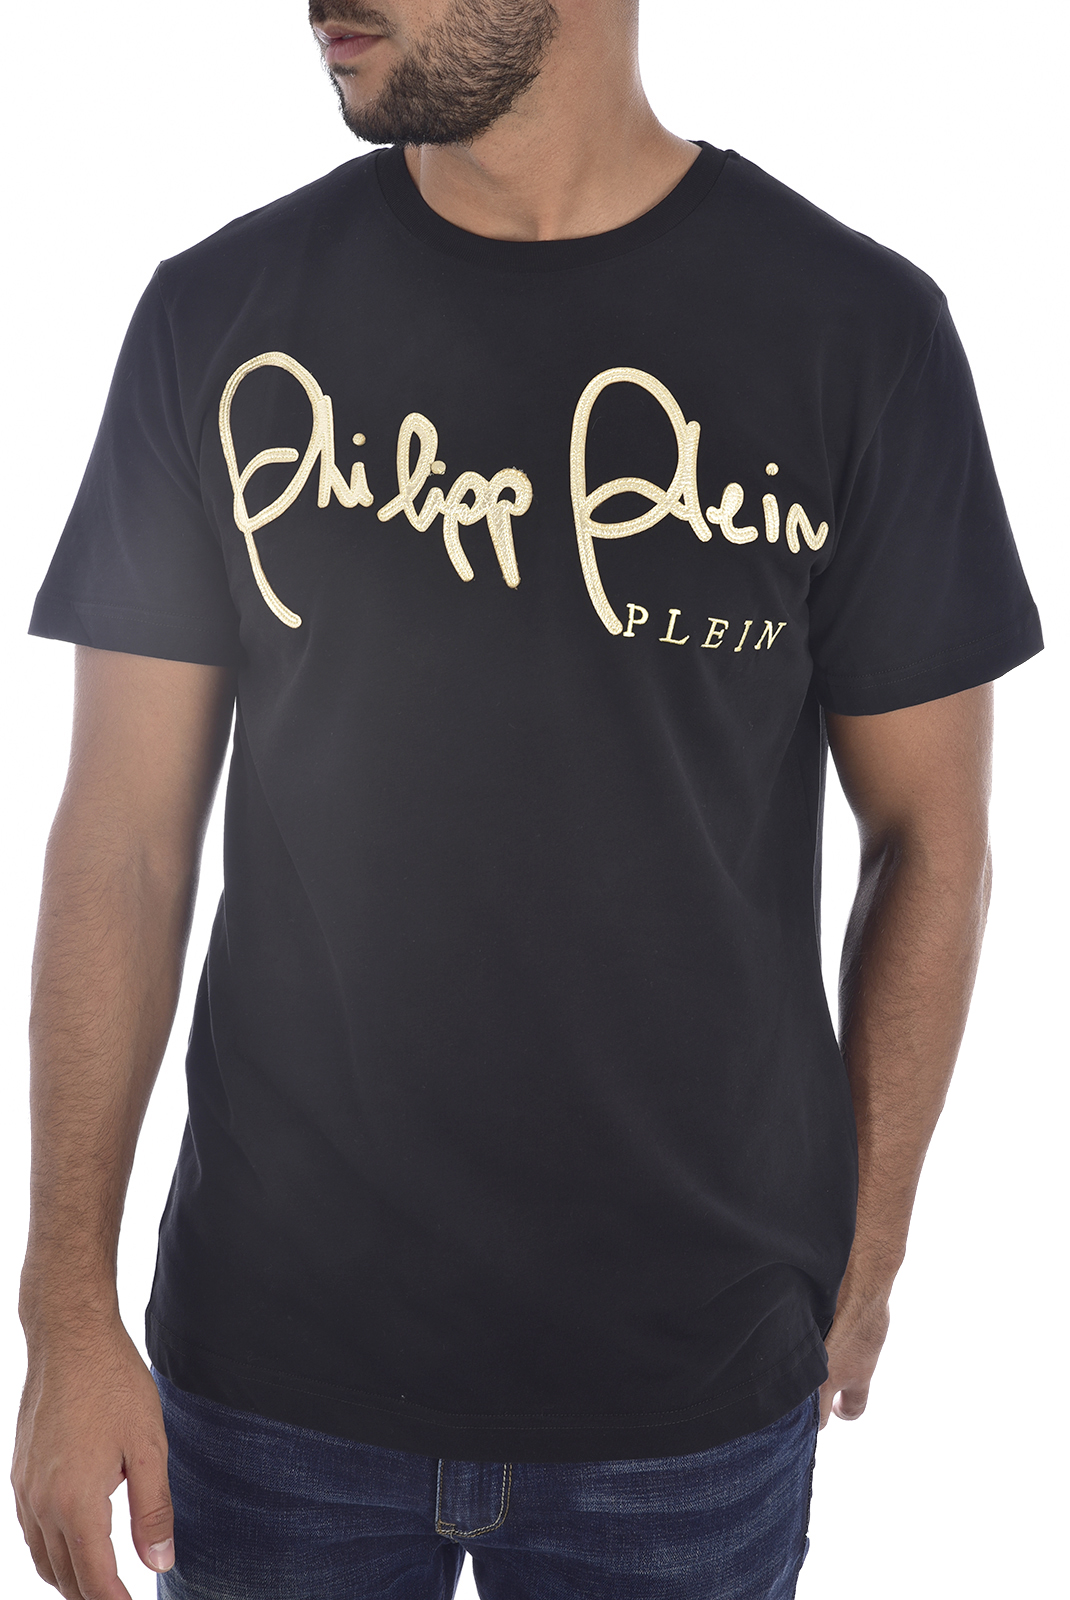 Tee-shirts  Philipp plein MTK2367 GOLD CUT ROUND NECK SS SIGN BLACK/GOLD